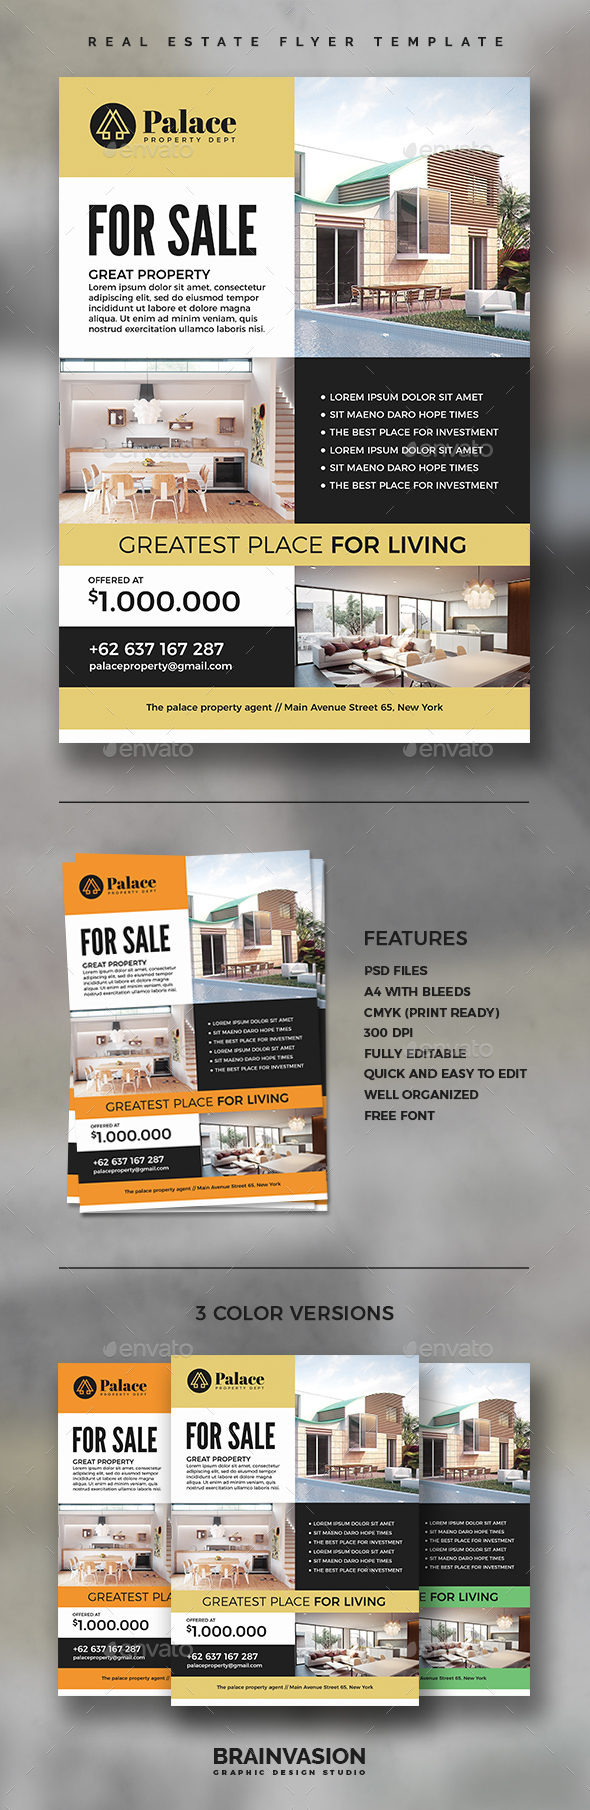 Real Estate Flyer Template Vol.03 - Corporate Flyers